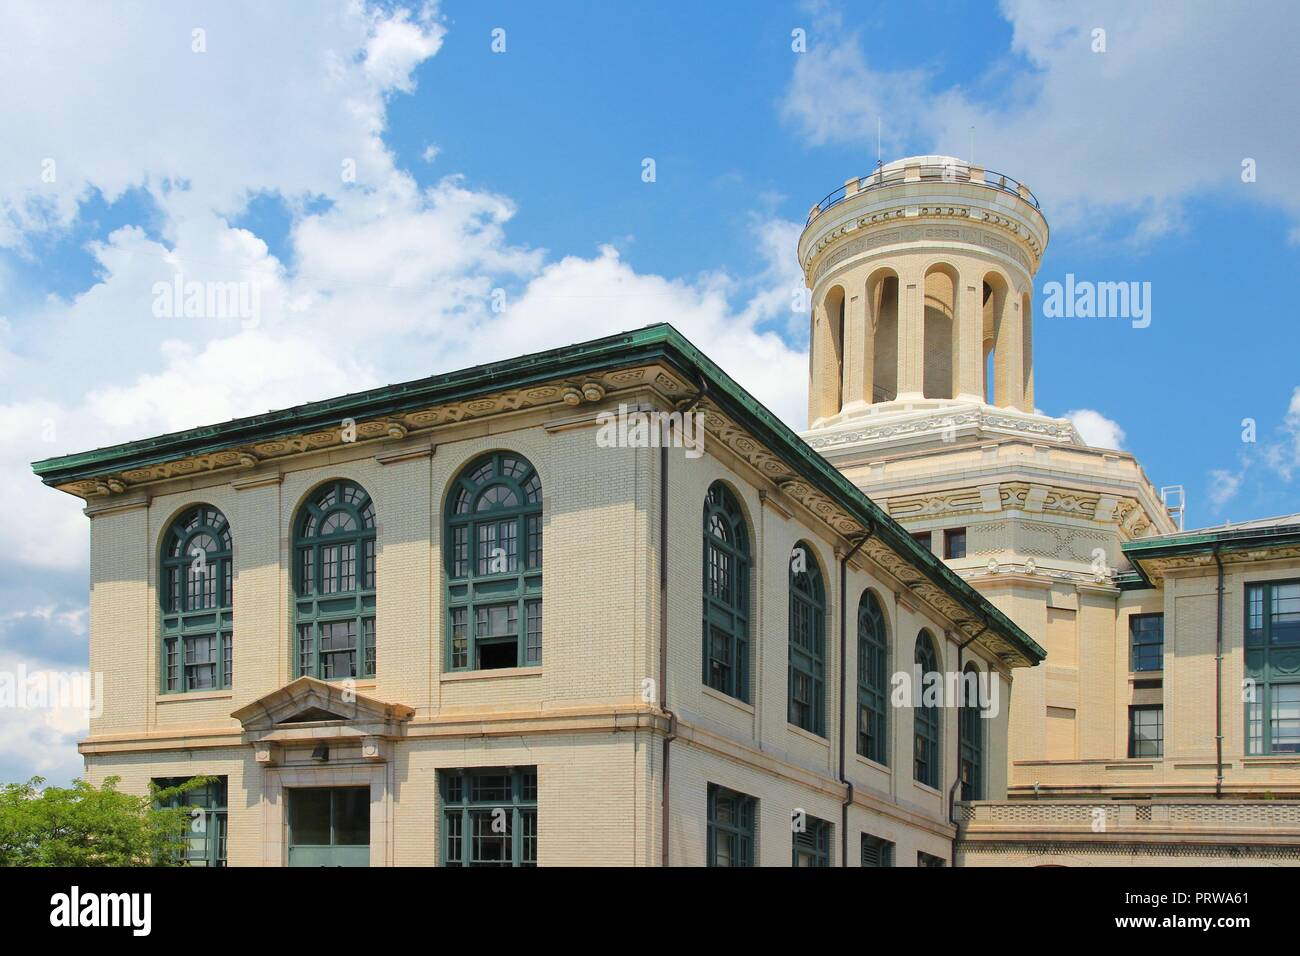 Pittsburgh, Pennsylvania - city in the United States. Old architecture of Carnegie Mellon University. Stock Photo